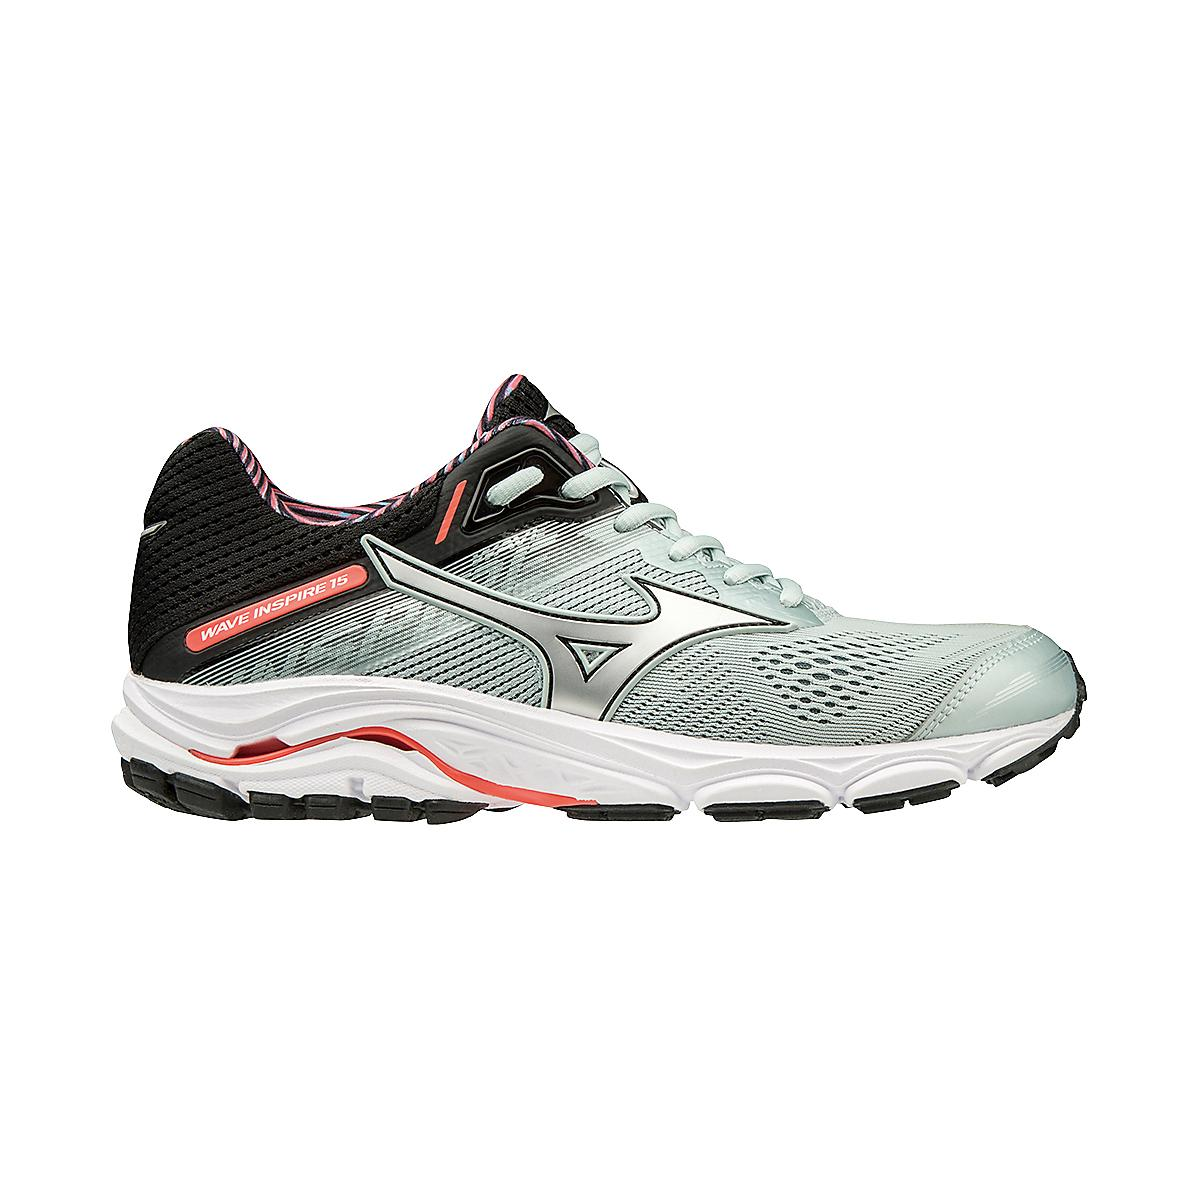 e05d487f4ea67 Womens Mizuno Wave Inspire 15 Running Shoe at Road Runner Sports